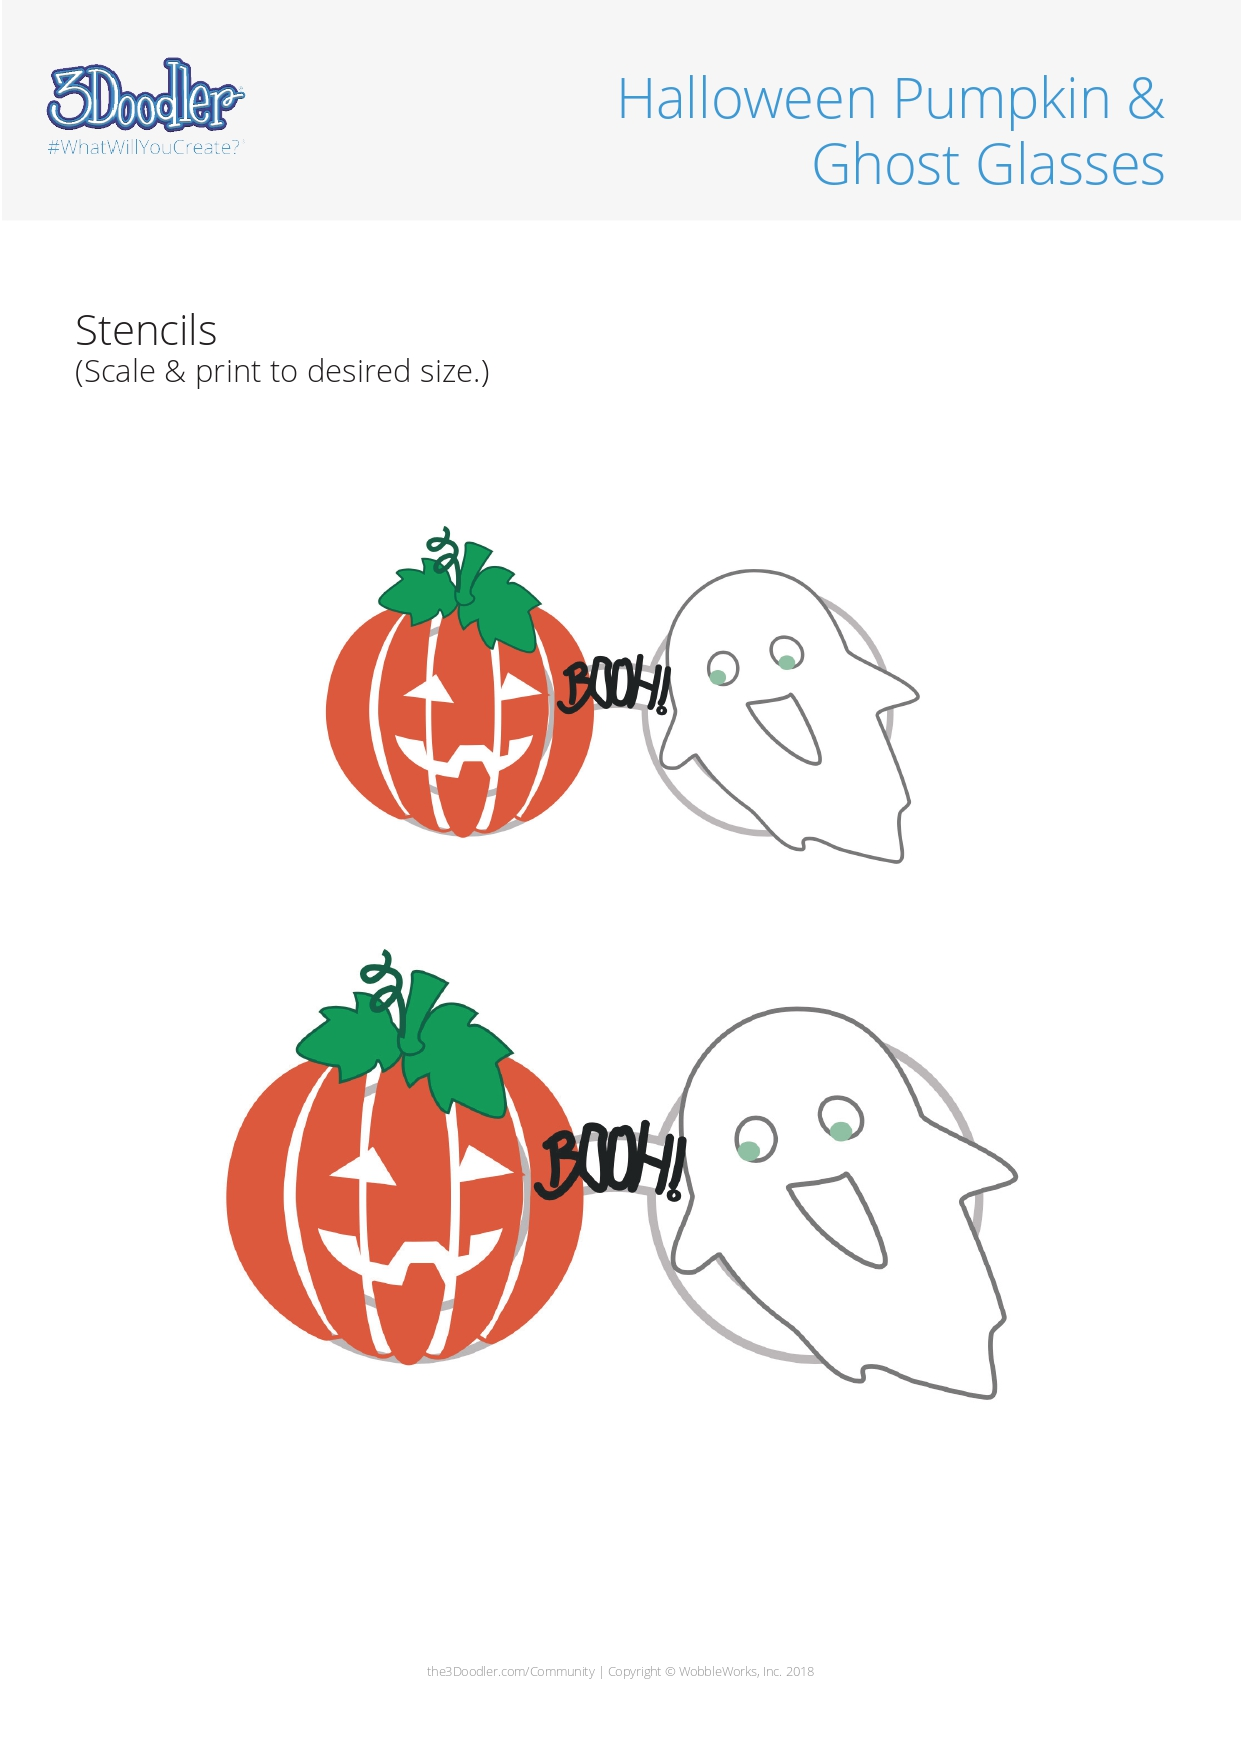 3D Pen Stencil Template Pumpkin & Ghost Glasses